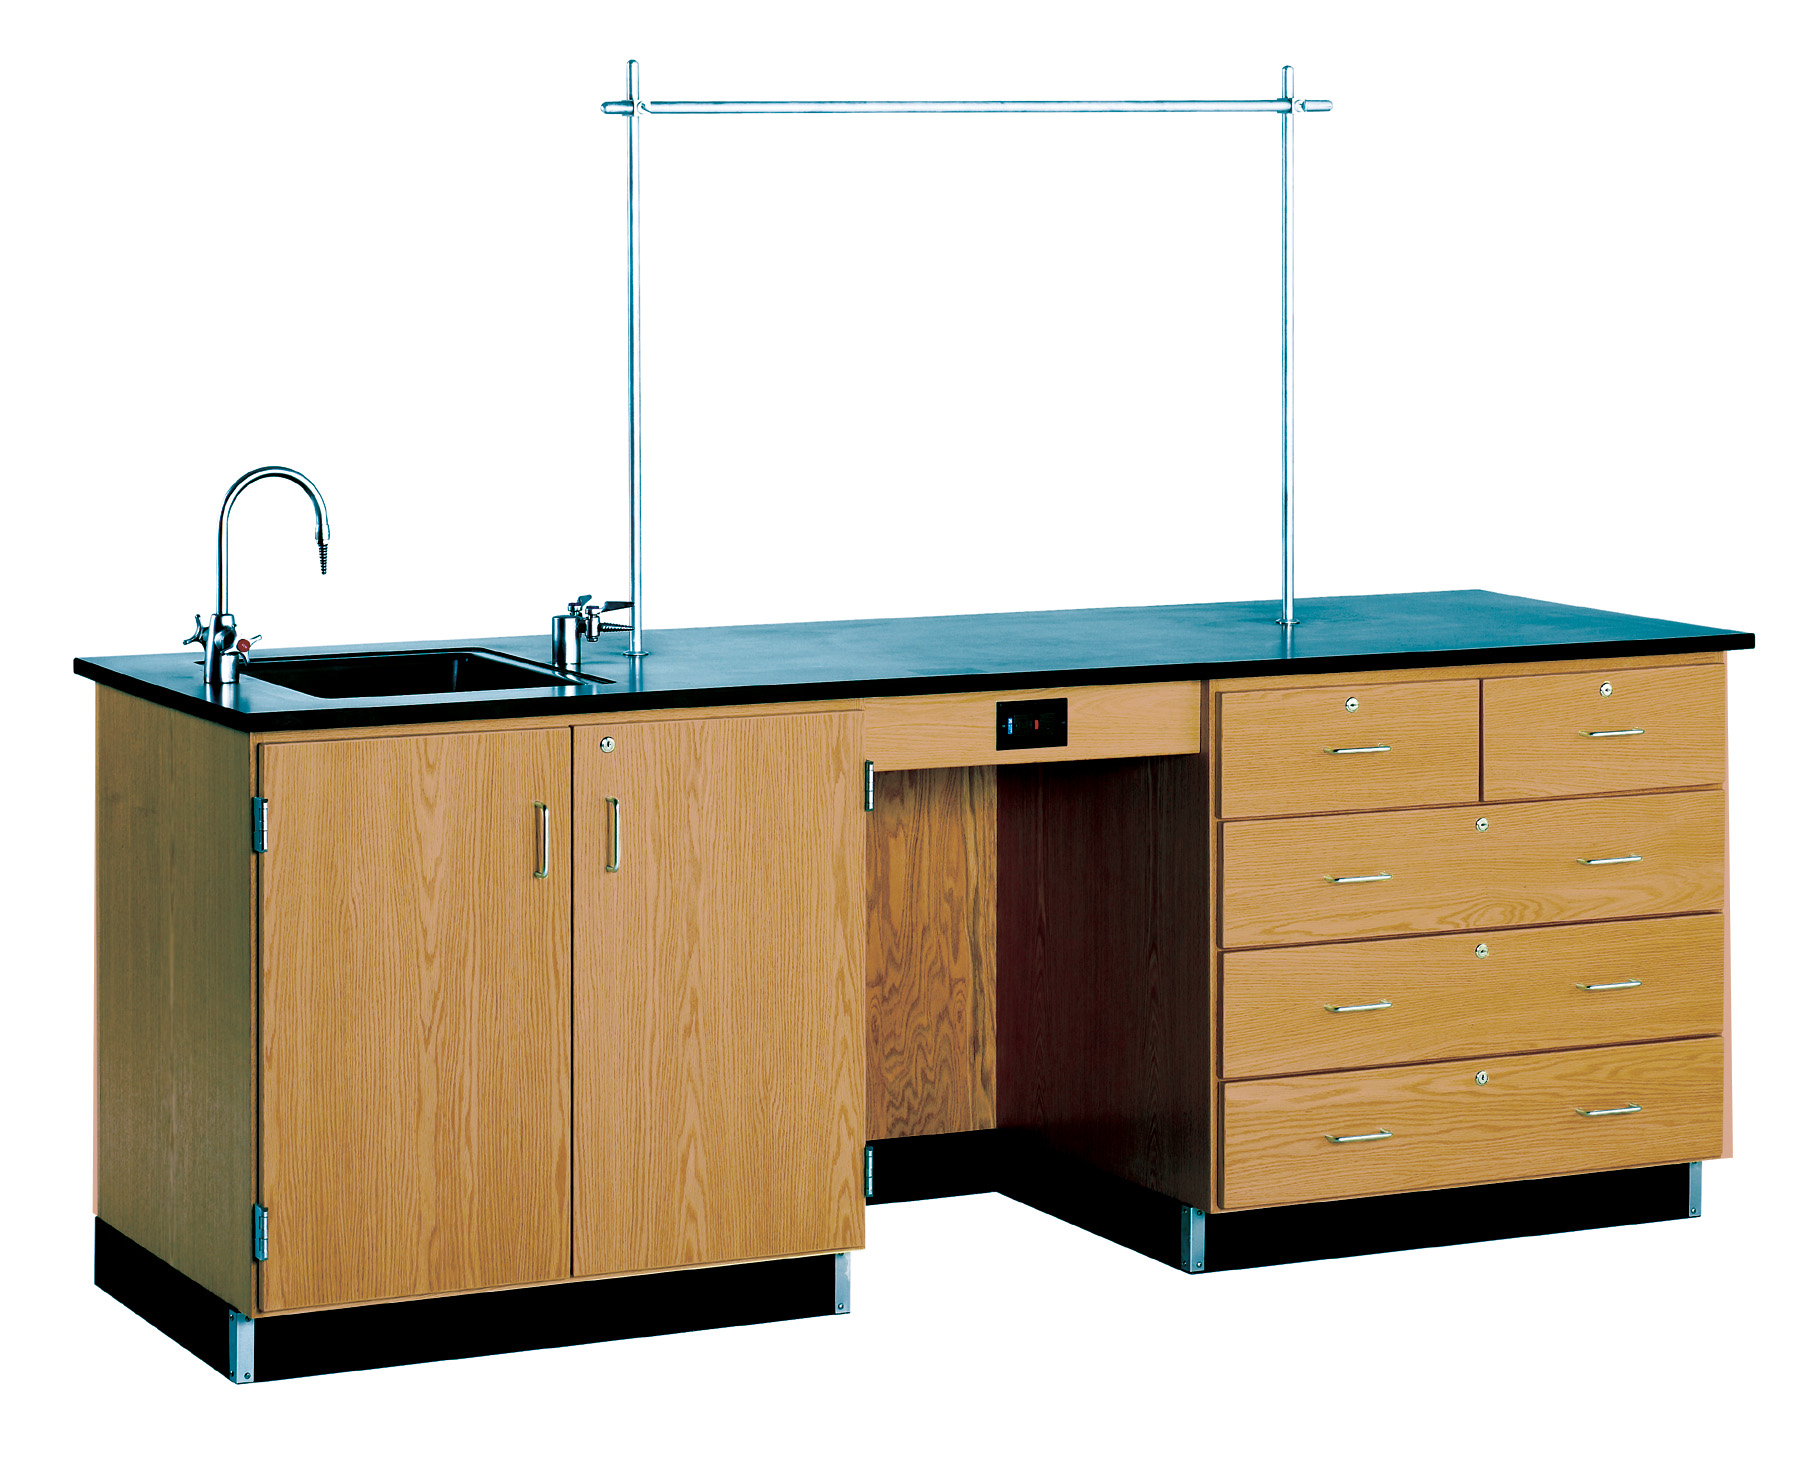 Diversified Woodcrafts 8' Instructor Desk with Sink & Cabinets